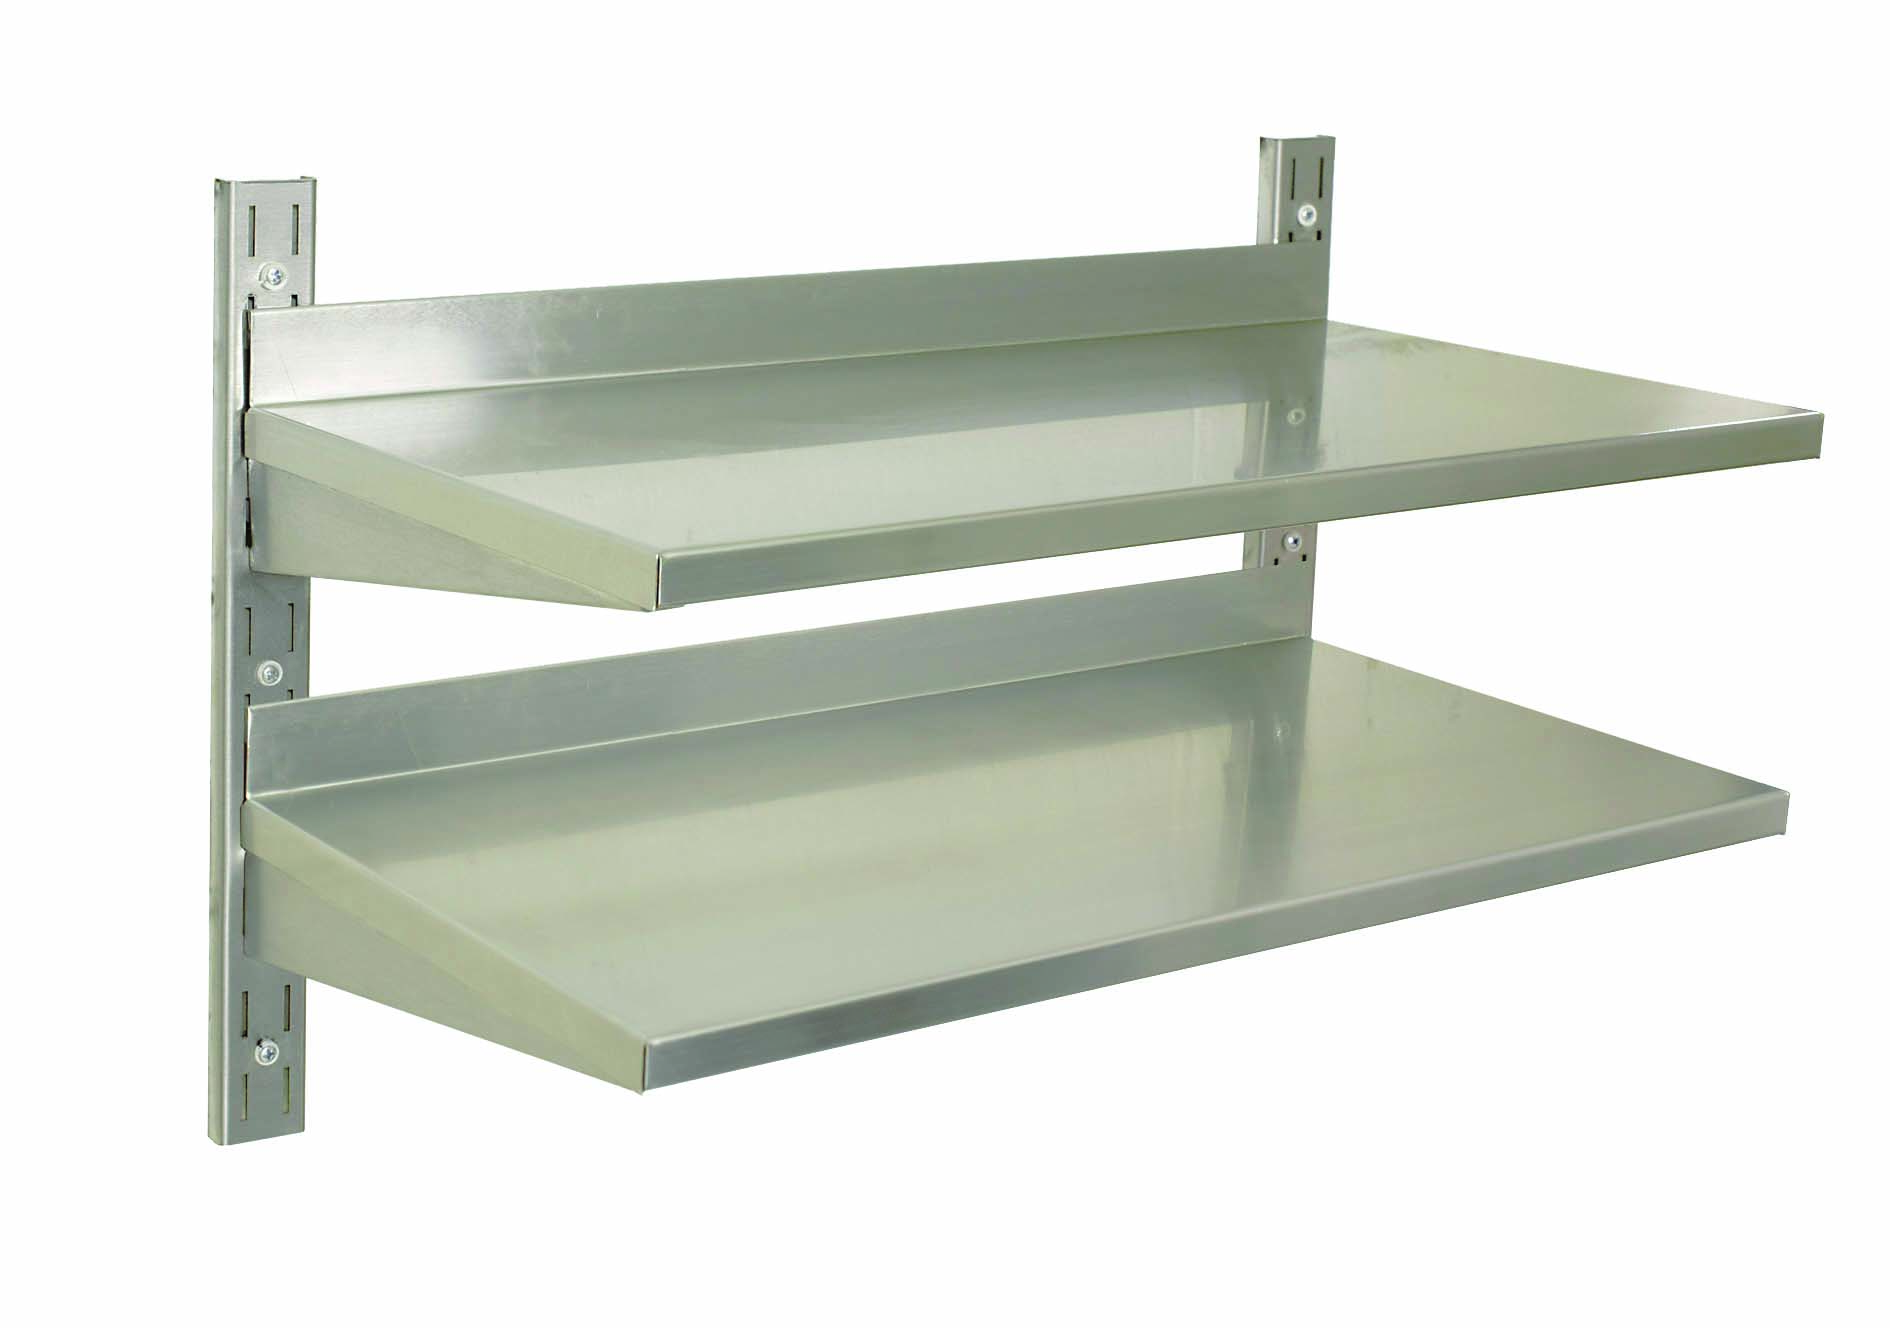 S/STEEL WALL SHELVING DOUBLE - 900 x 300mm